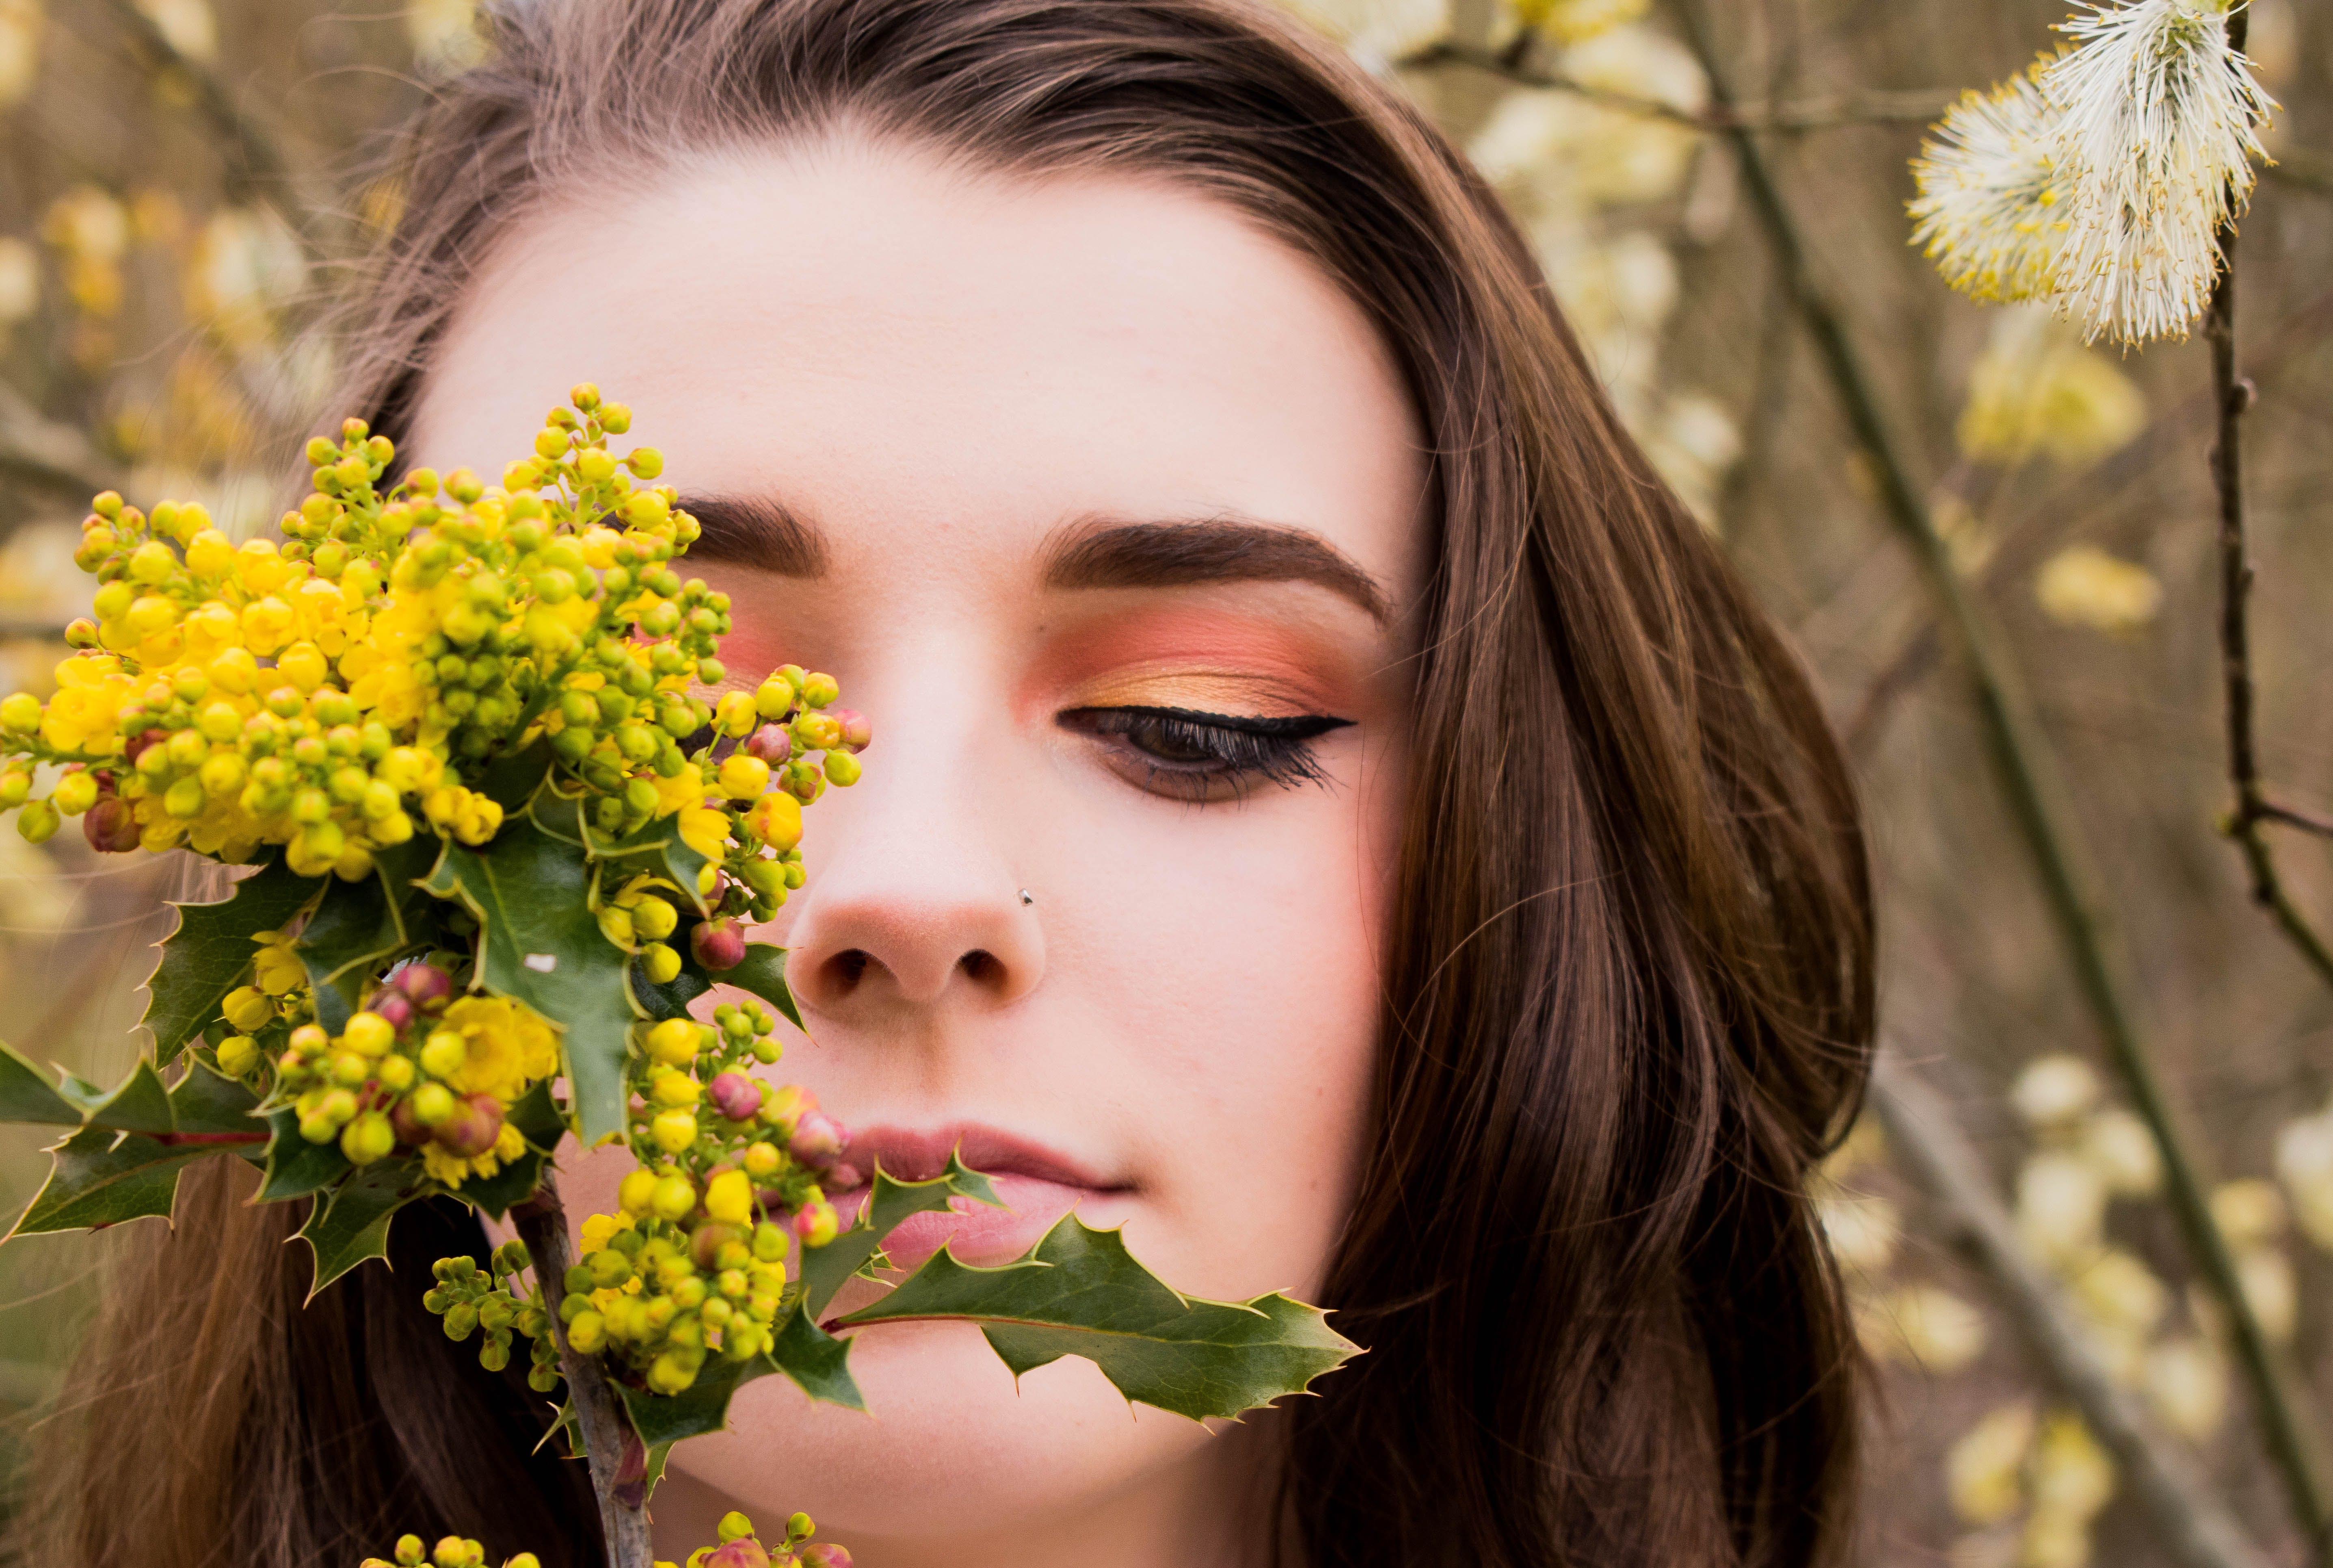 Woman Looking at a Green and Yellow Leafed Plant